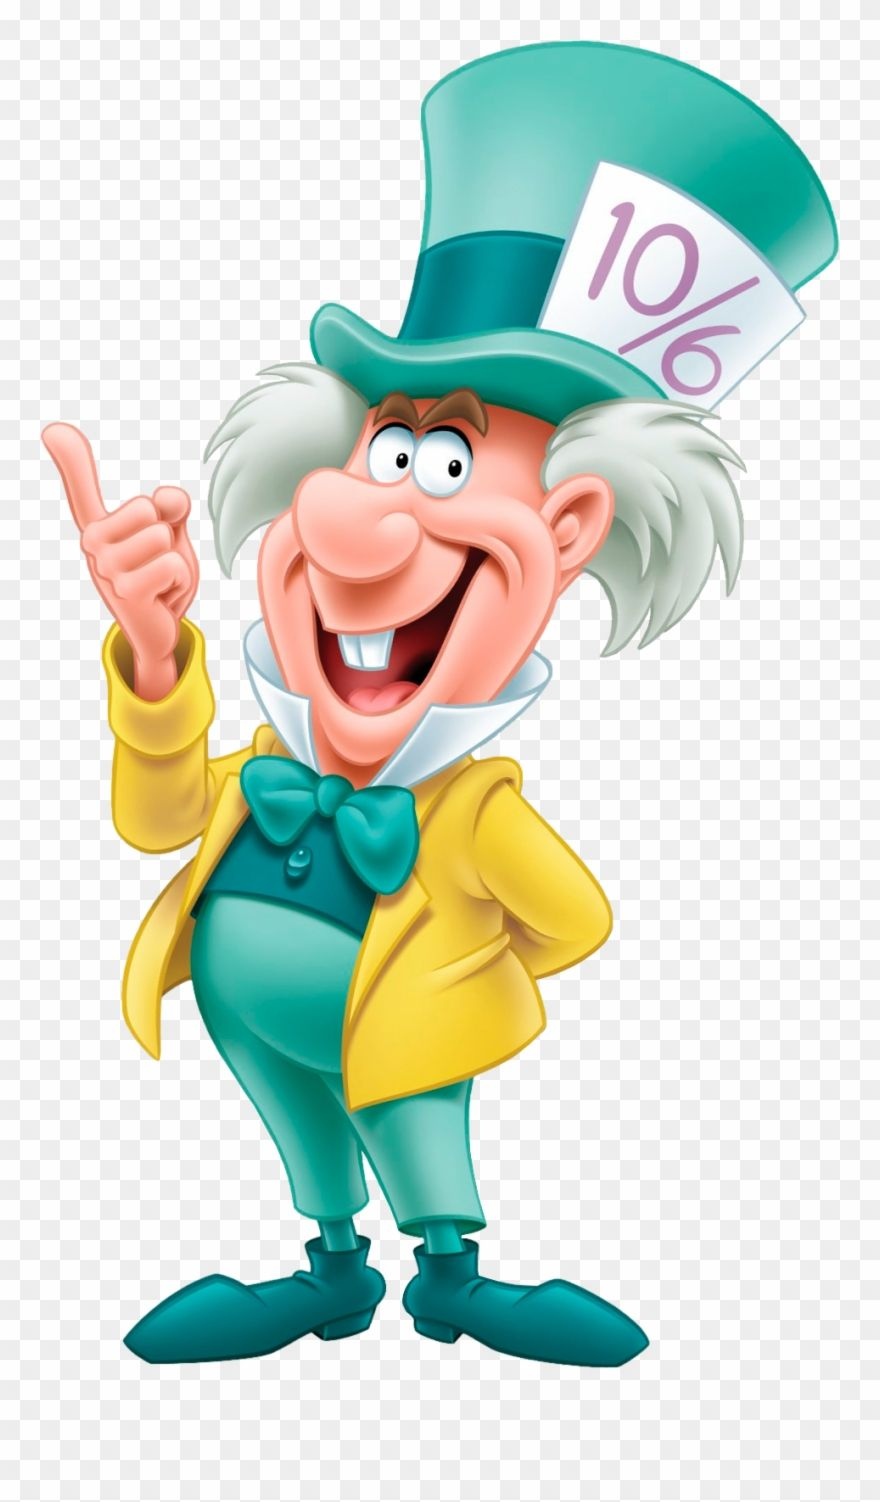 Download Hd Mad Hatter Disney Alice In Wonderland Png Clipart And Use The Free C In 2021 Alice In Wonderland Cartoon Alice In Wonderland Characters Mad Hatter Disney